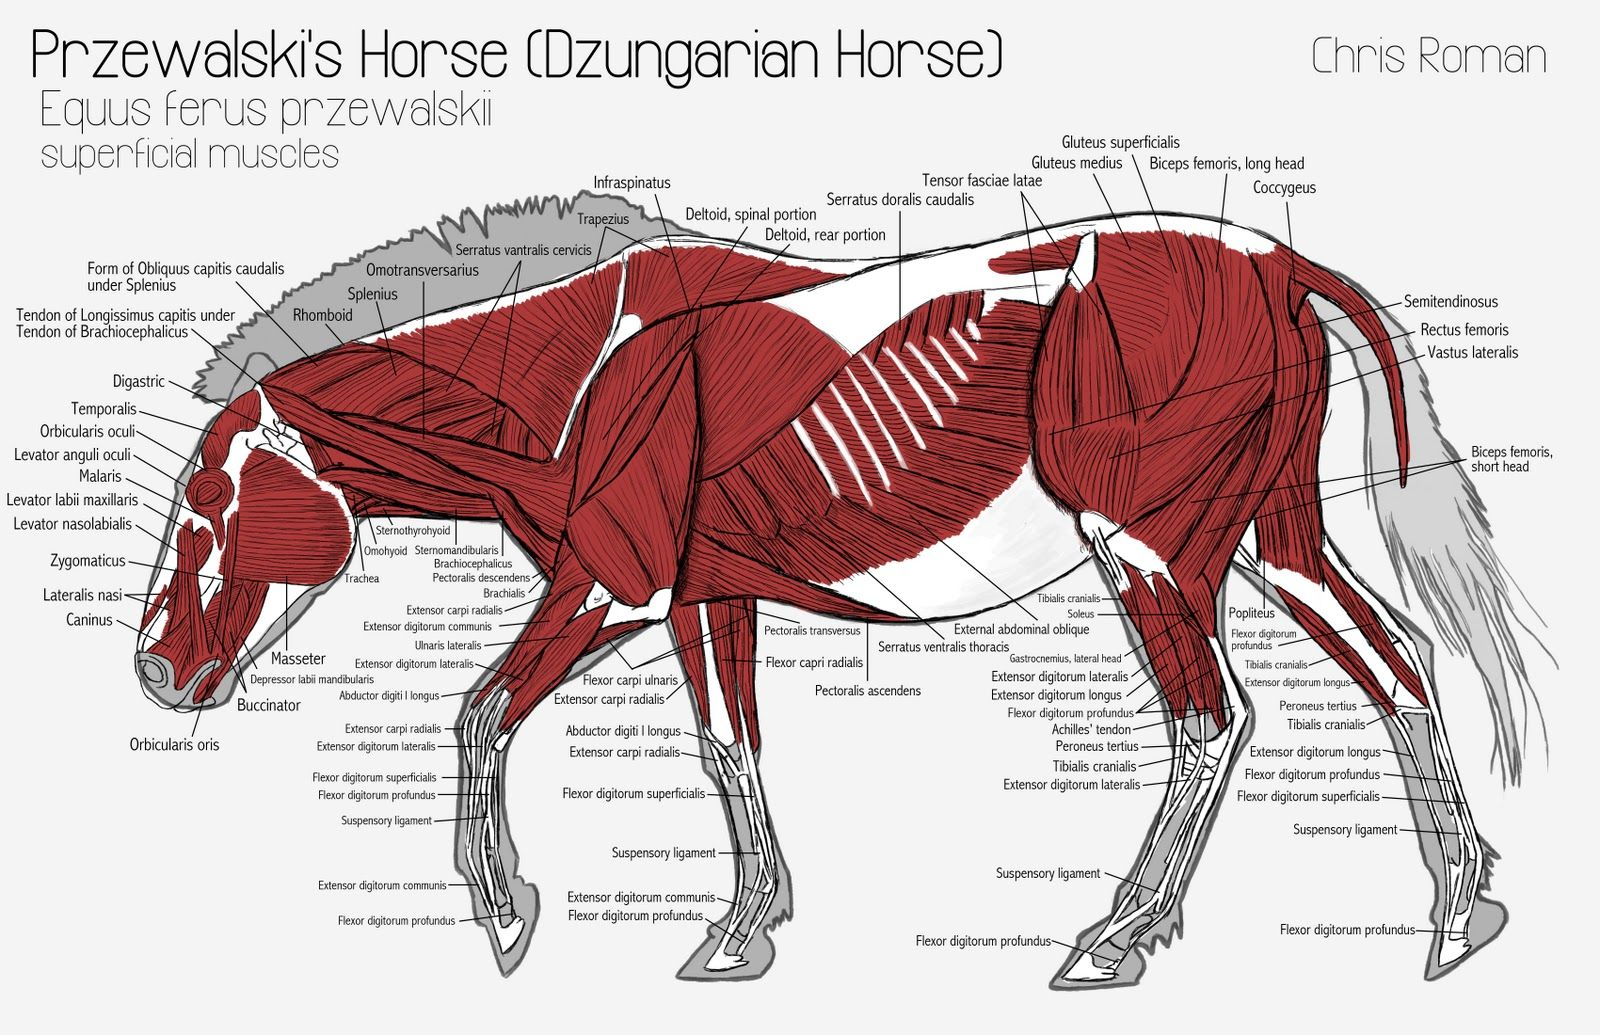 horse anatomy diagram muscles labled of the lungs pin by mohammed anuz on animals horses photos new